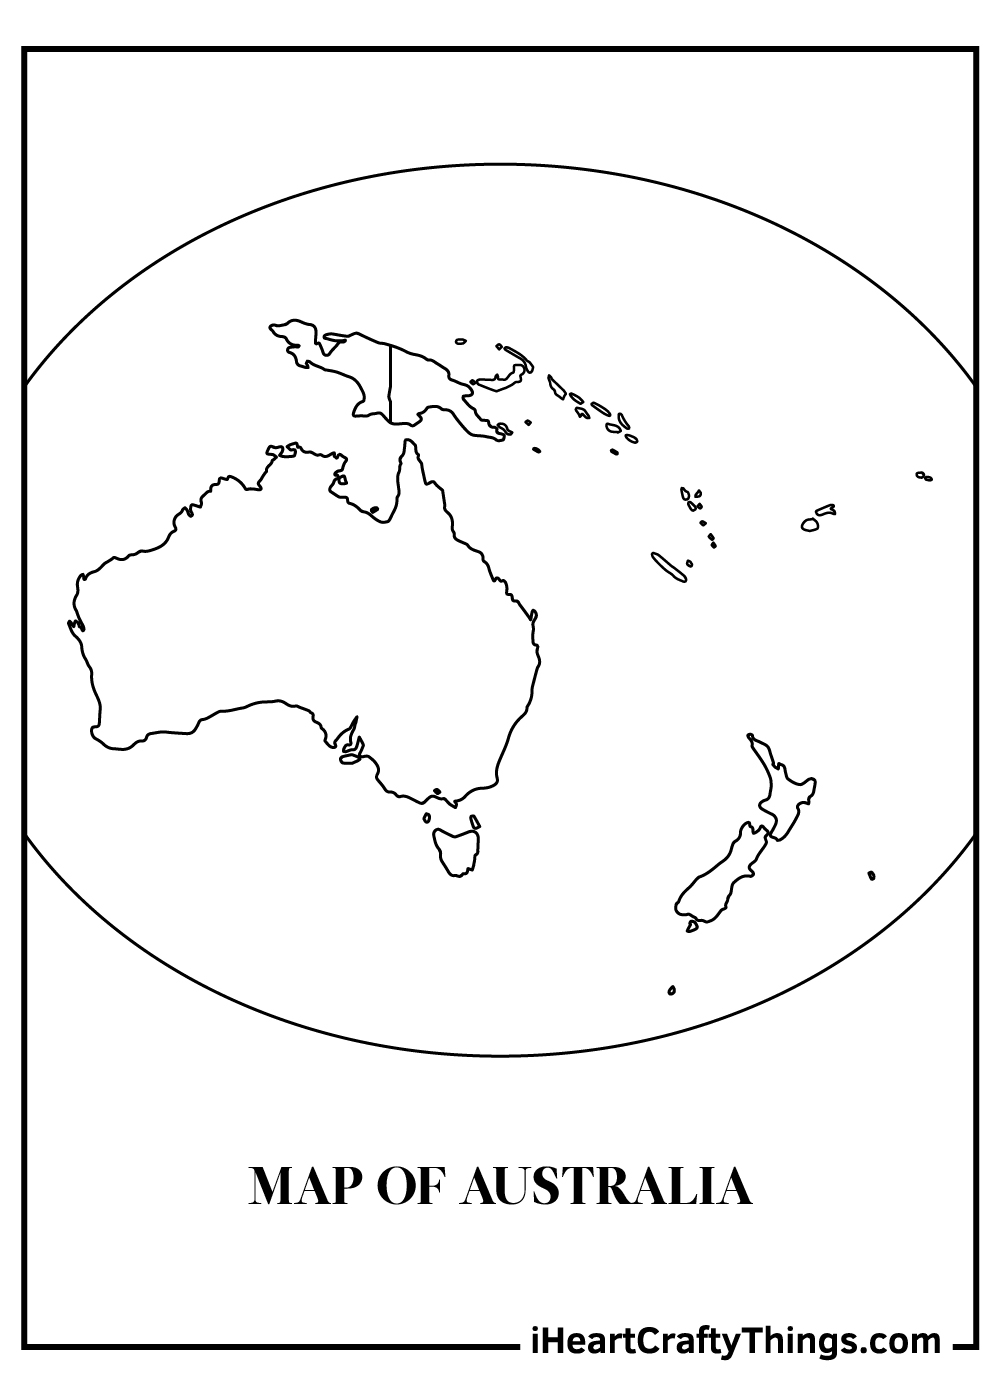 australia map coloring pages free printable